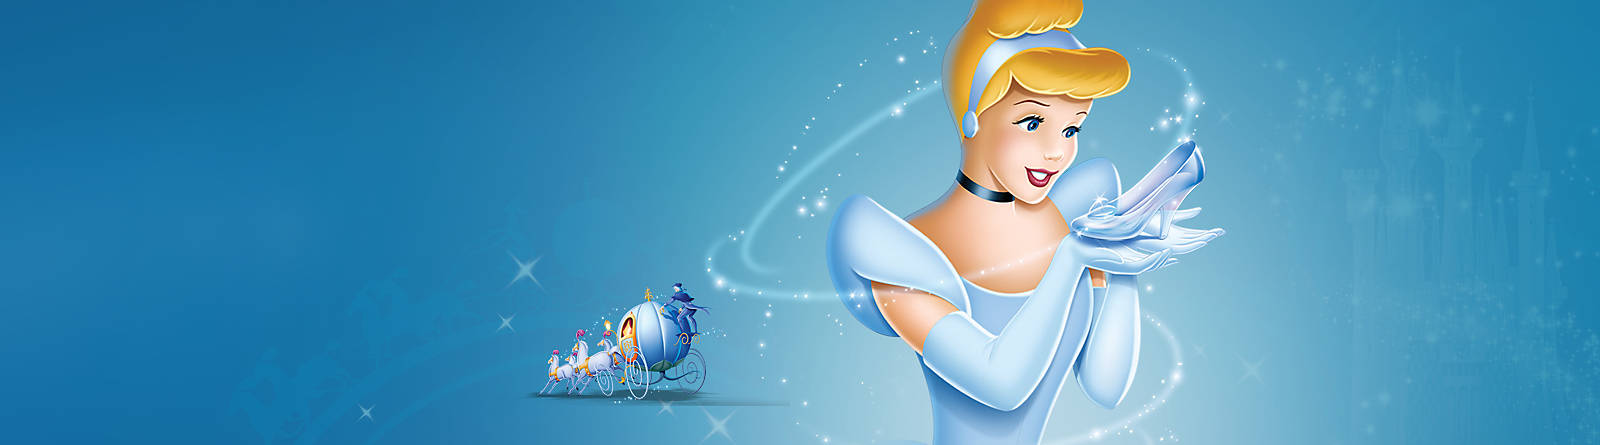 Cinderella Biddi-boddi-boo!  Discover our range of Cinderella costumes, toys, accessories and more